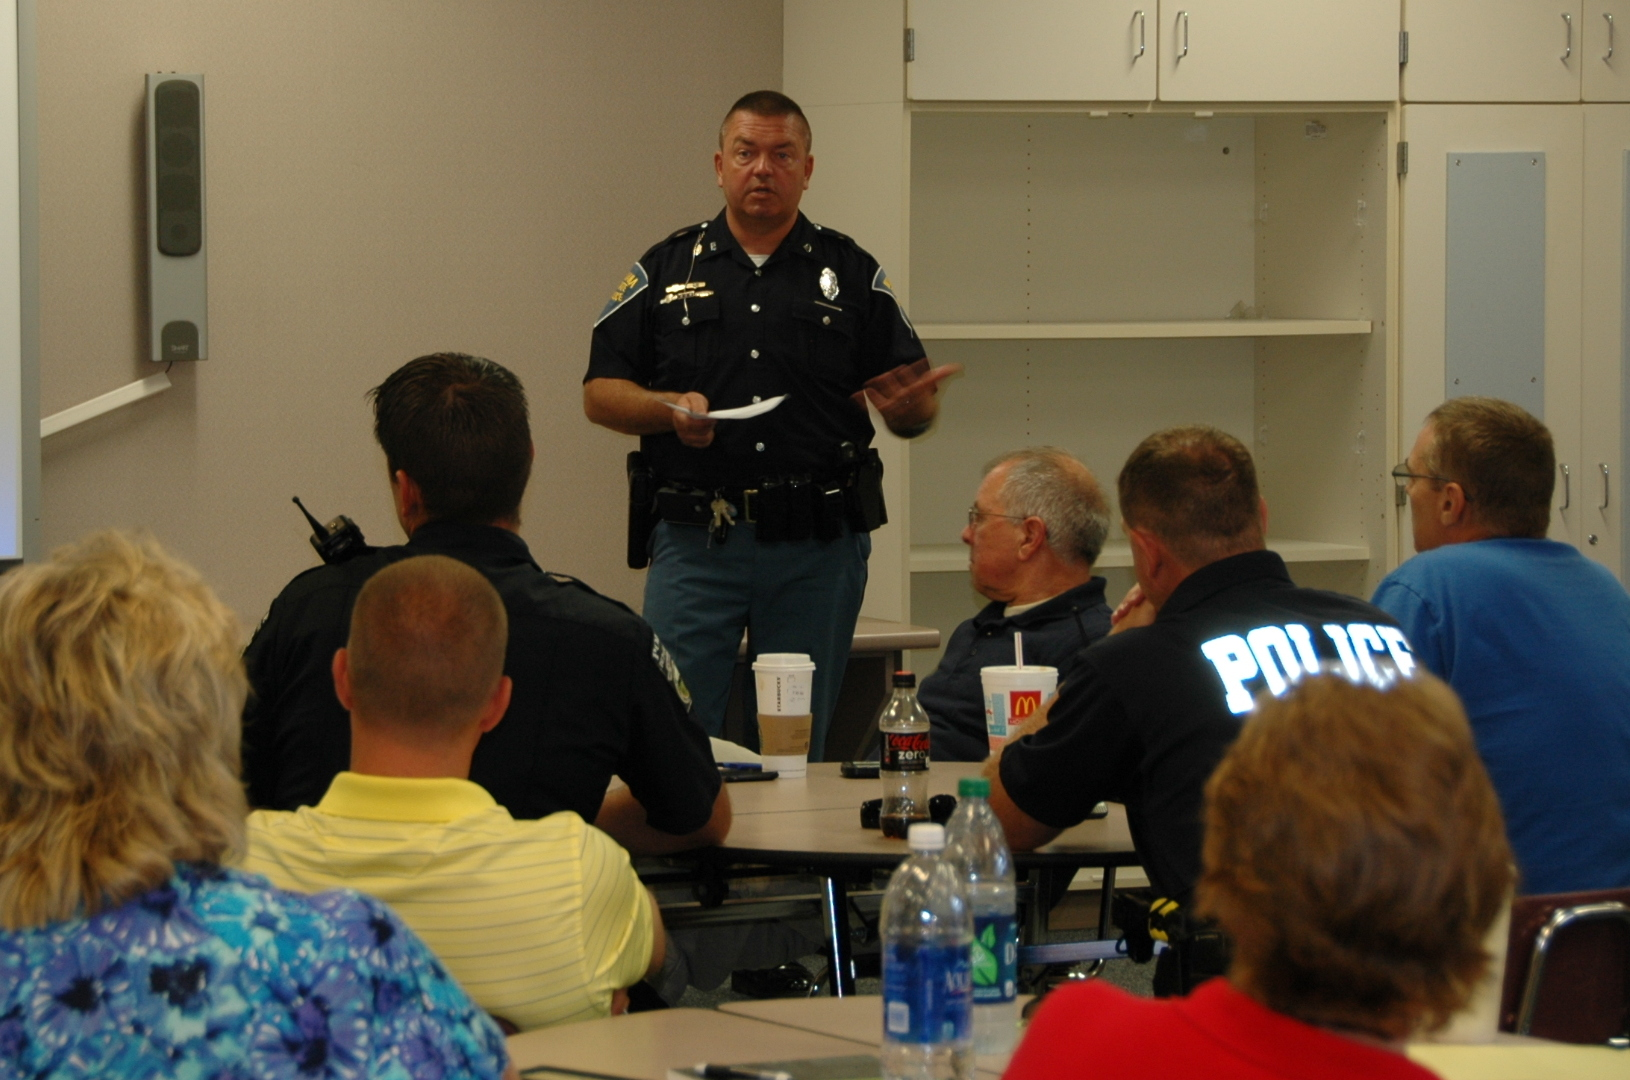 ISP gives safety presentation